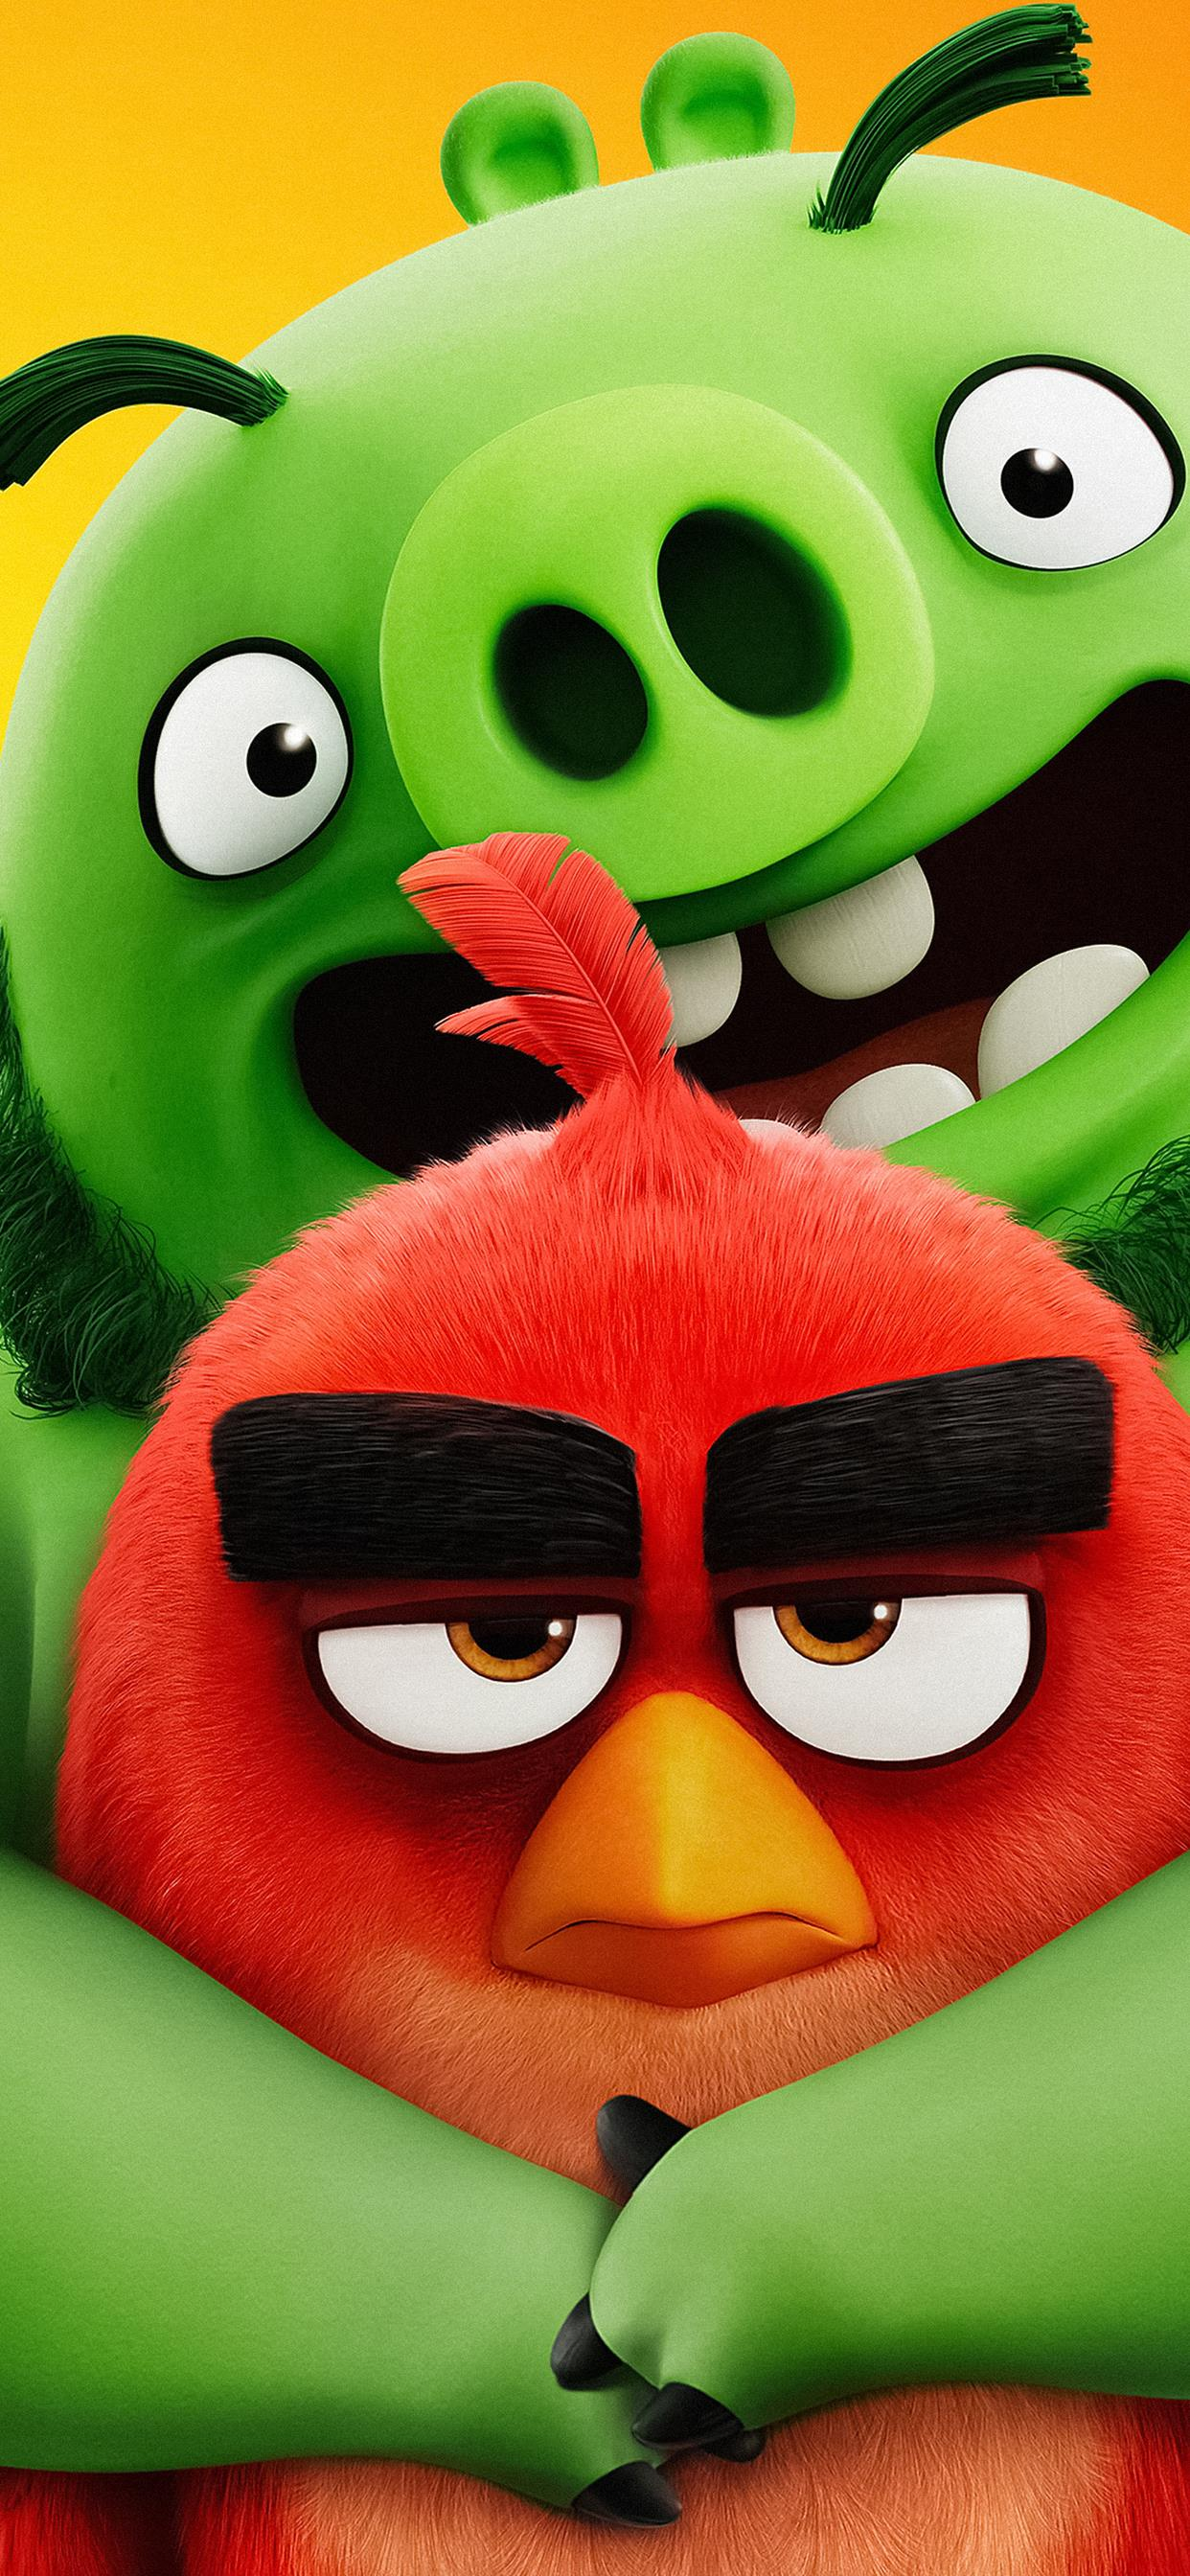 The Angry Birds Movie 2 2019 5k New Iphone X Wallpapers Free Download